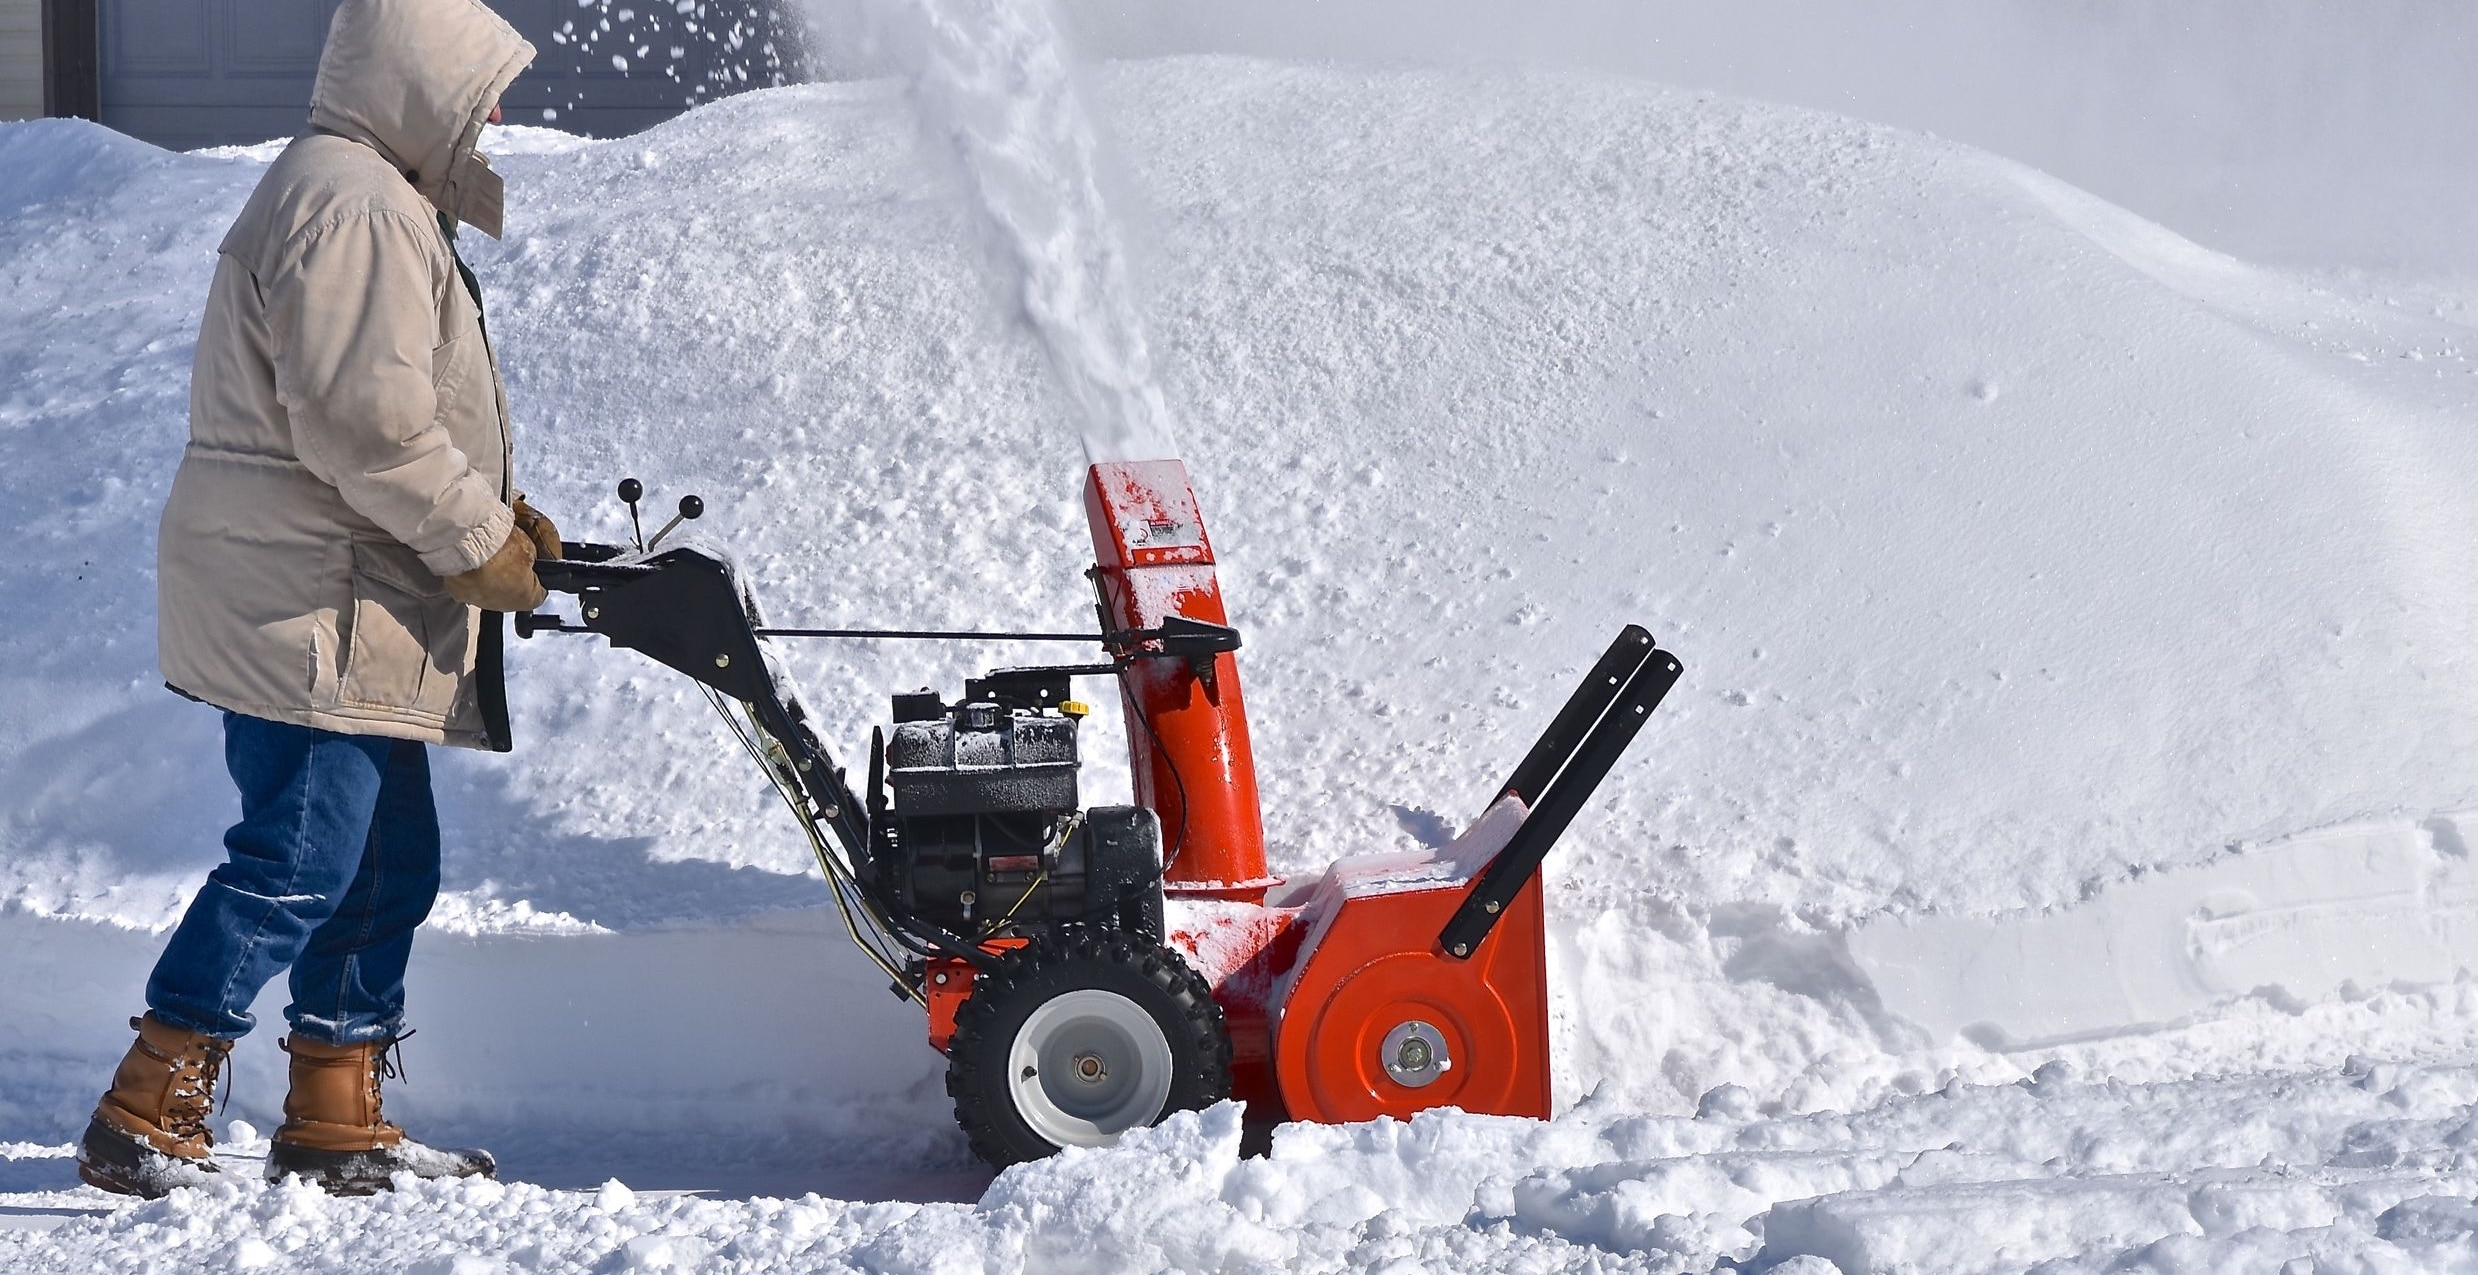 Man clearing sidewalk with snow blower